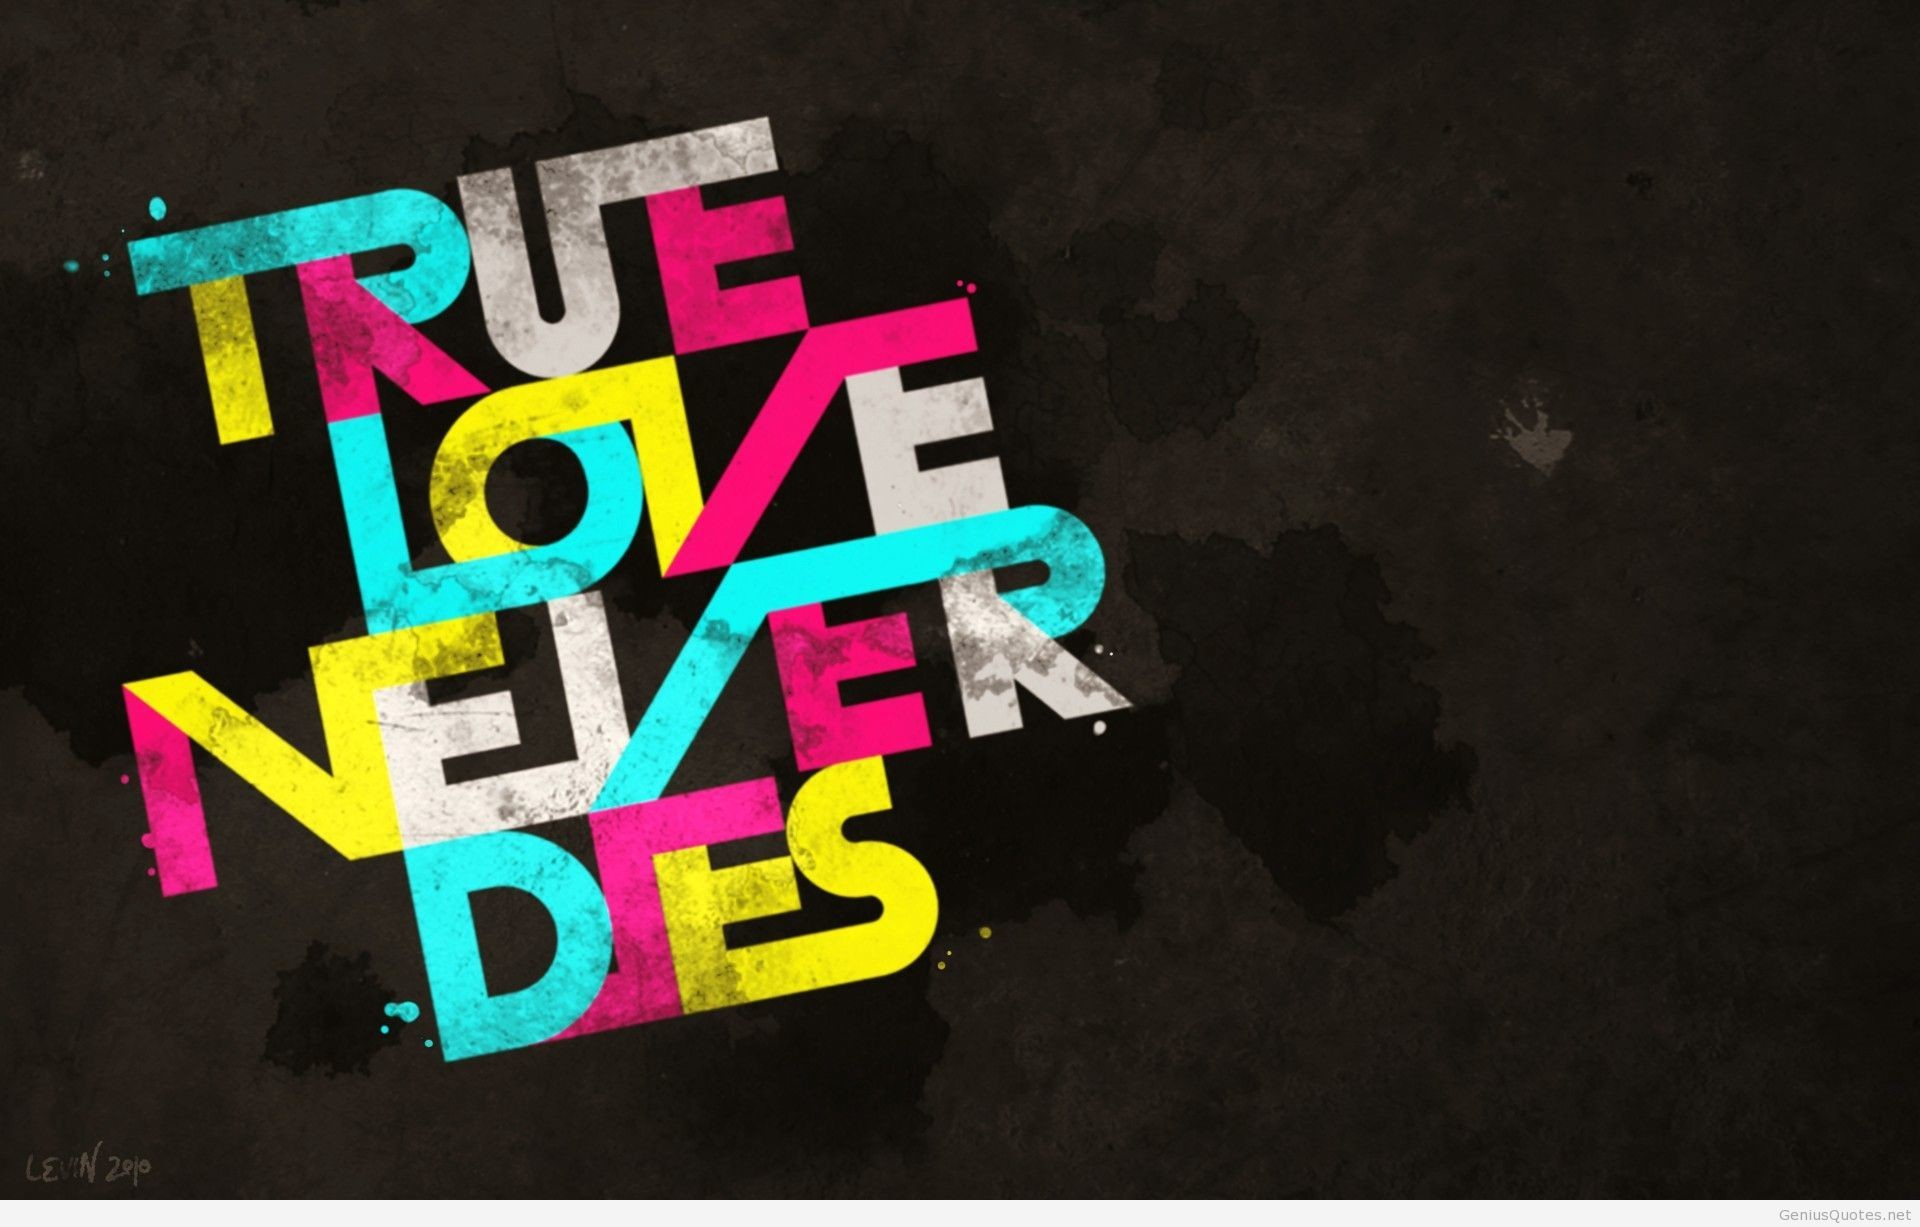 1920x1227 True love quote wallpaper HD